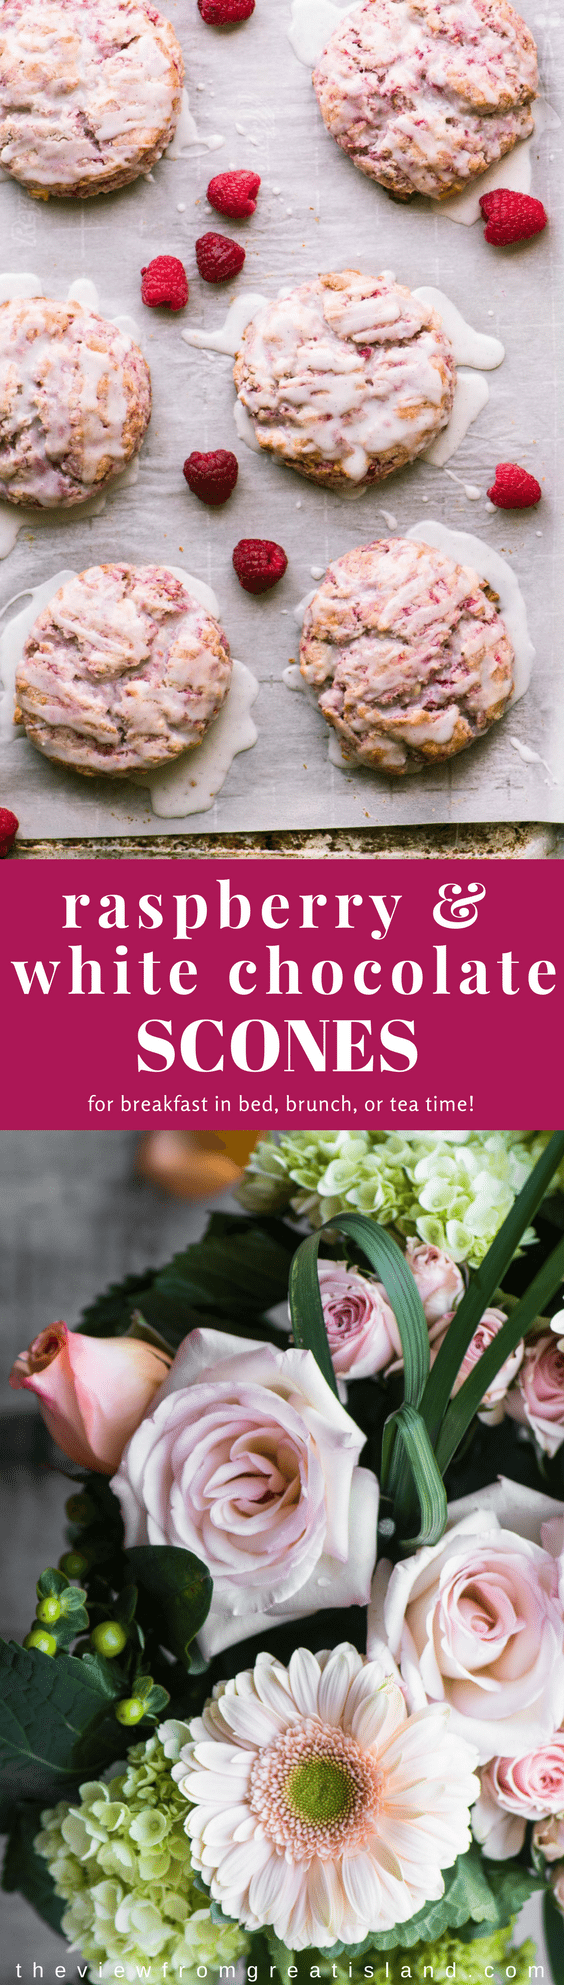 These berrylicious Raspberry White Chocolate Scones have the uncanny ability to brighten anyone's morning. Pop a couple of these pretty bakery style scones on a tray with a great cup of coffee and some fresh debi lilly design™ flowers and you've got the makings for one epic breakfast in bed! #valentinesday #romantic #breakfast #scones #raspberryscones #whitechocolate #raspberries #breakfastinbed